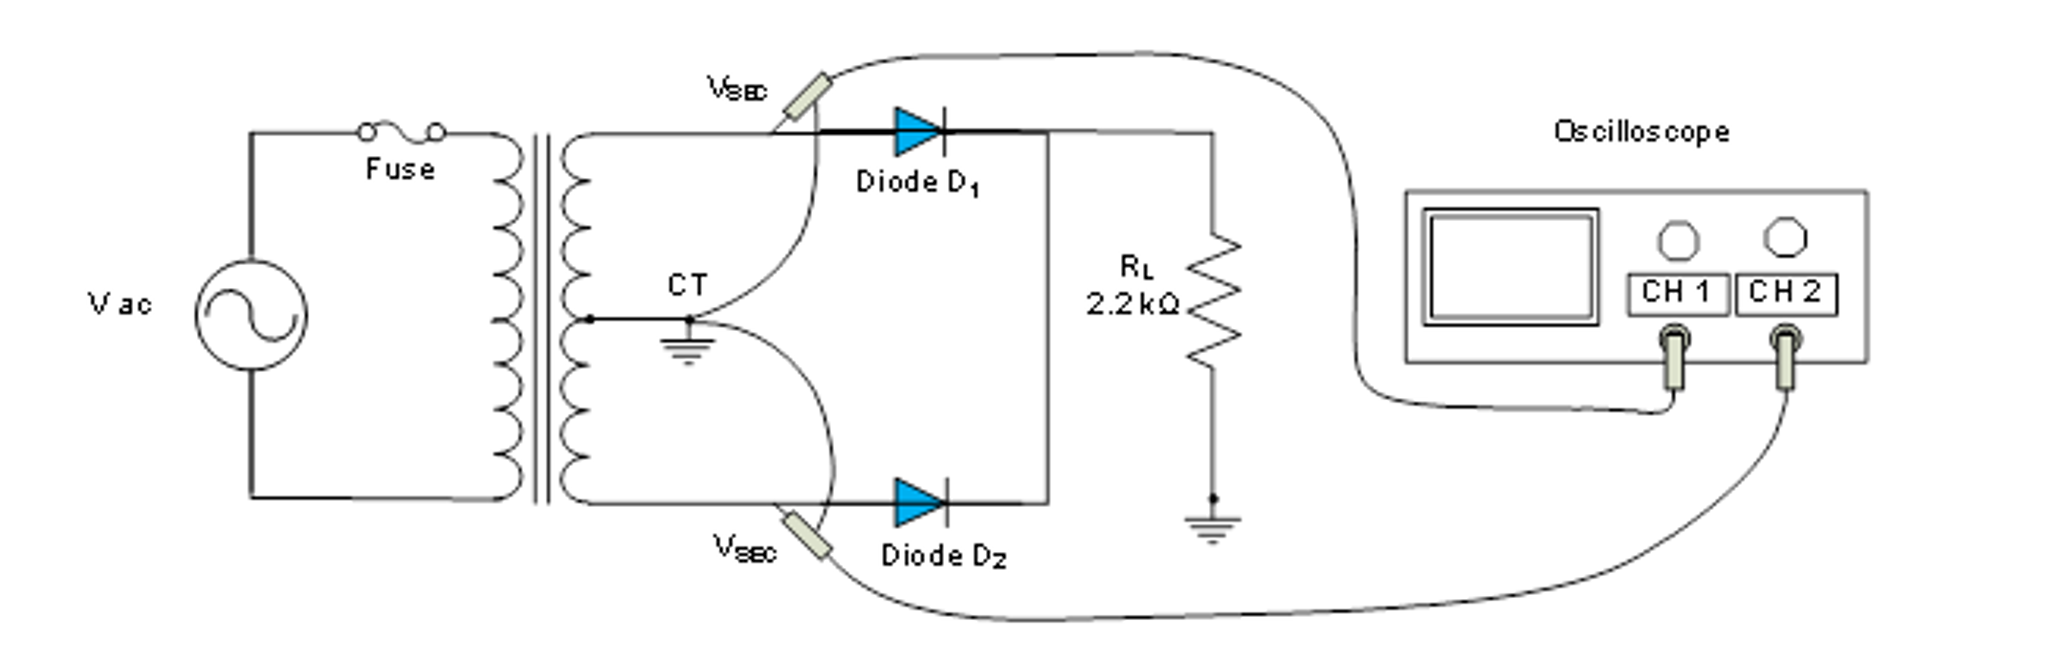 Part B Full Wave Rectification Software Multisi Half Rectifier Circuit From Ac To Dc Note The Polarity Of Capacitor Measure Peak Ripple Voltage Vripple Output Frequency